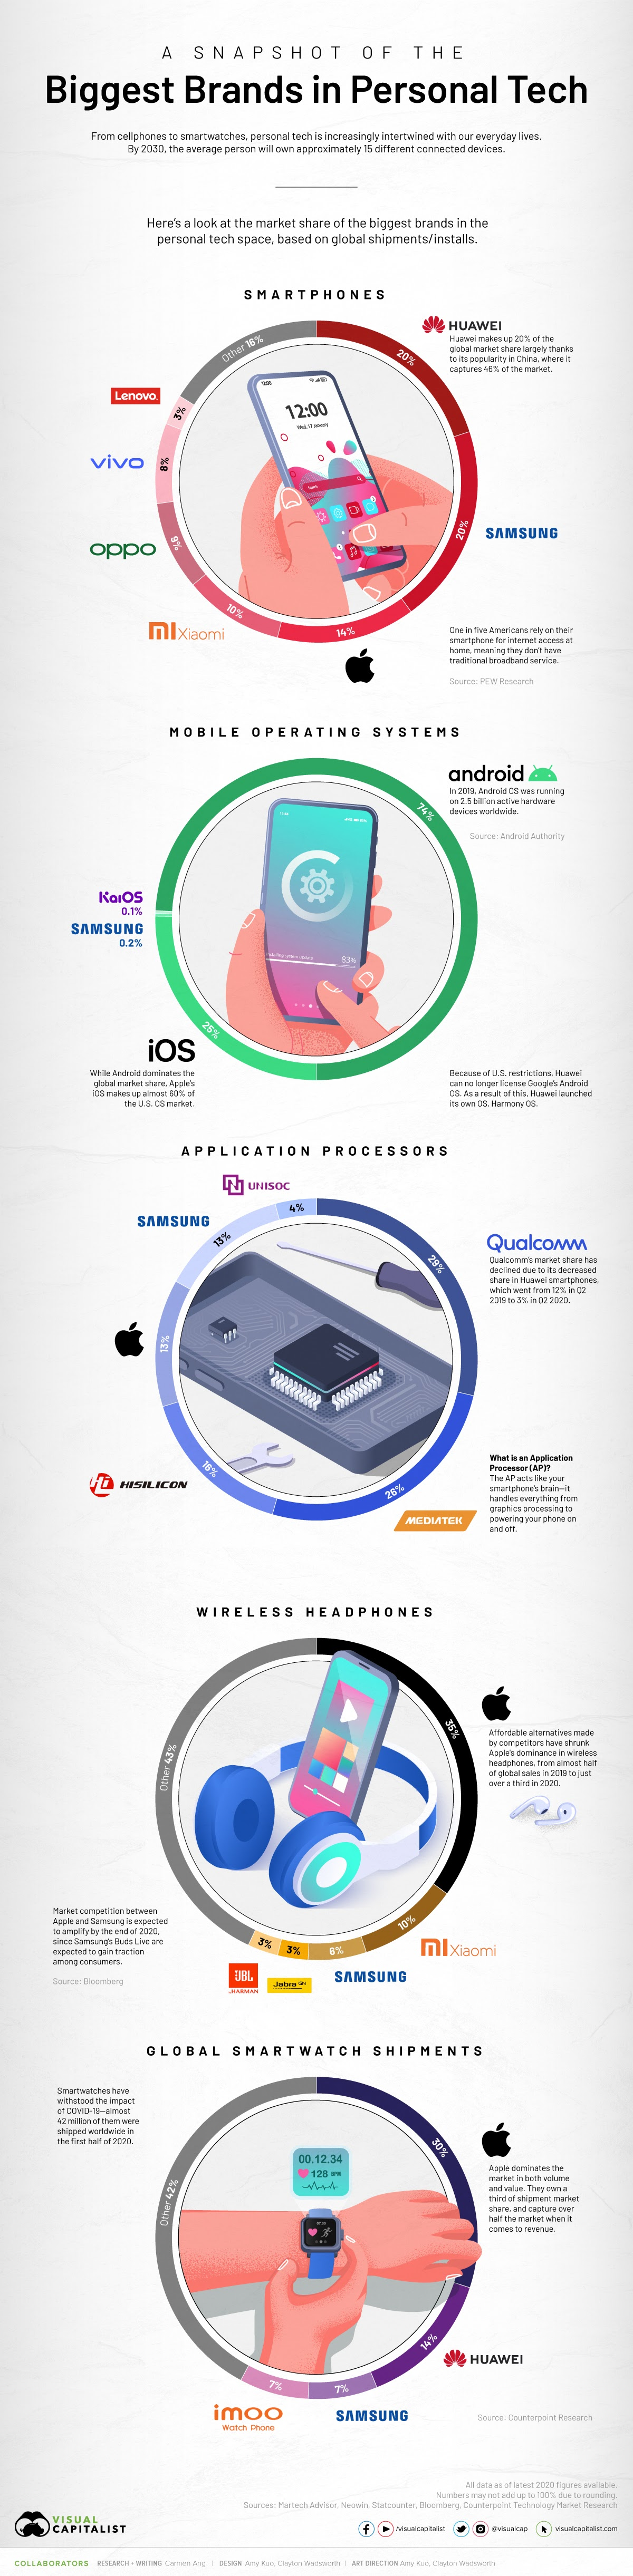 A Snapshot of the Global Personal Tech Market #infographic